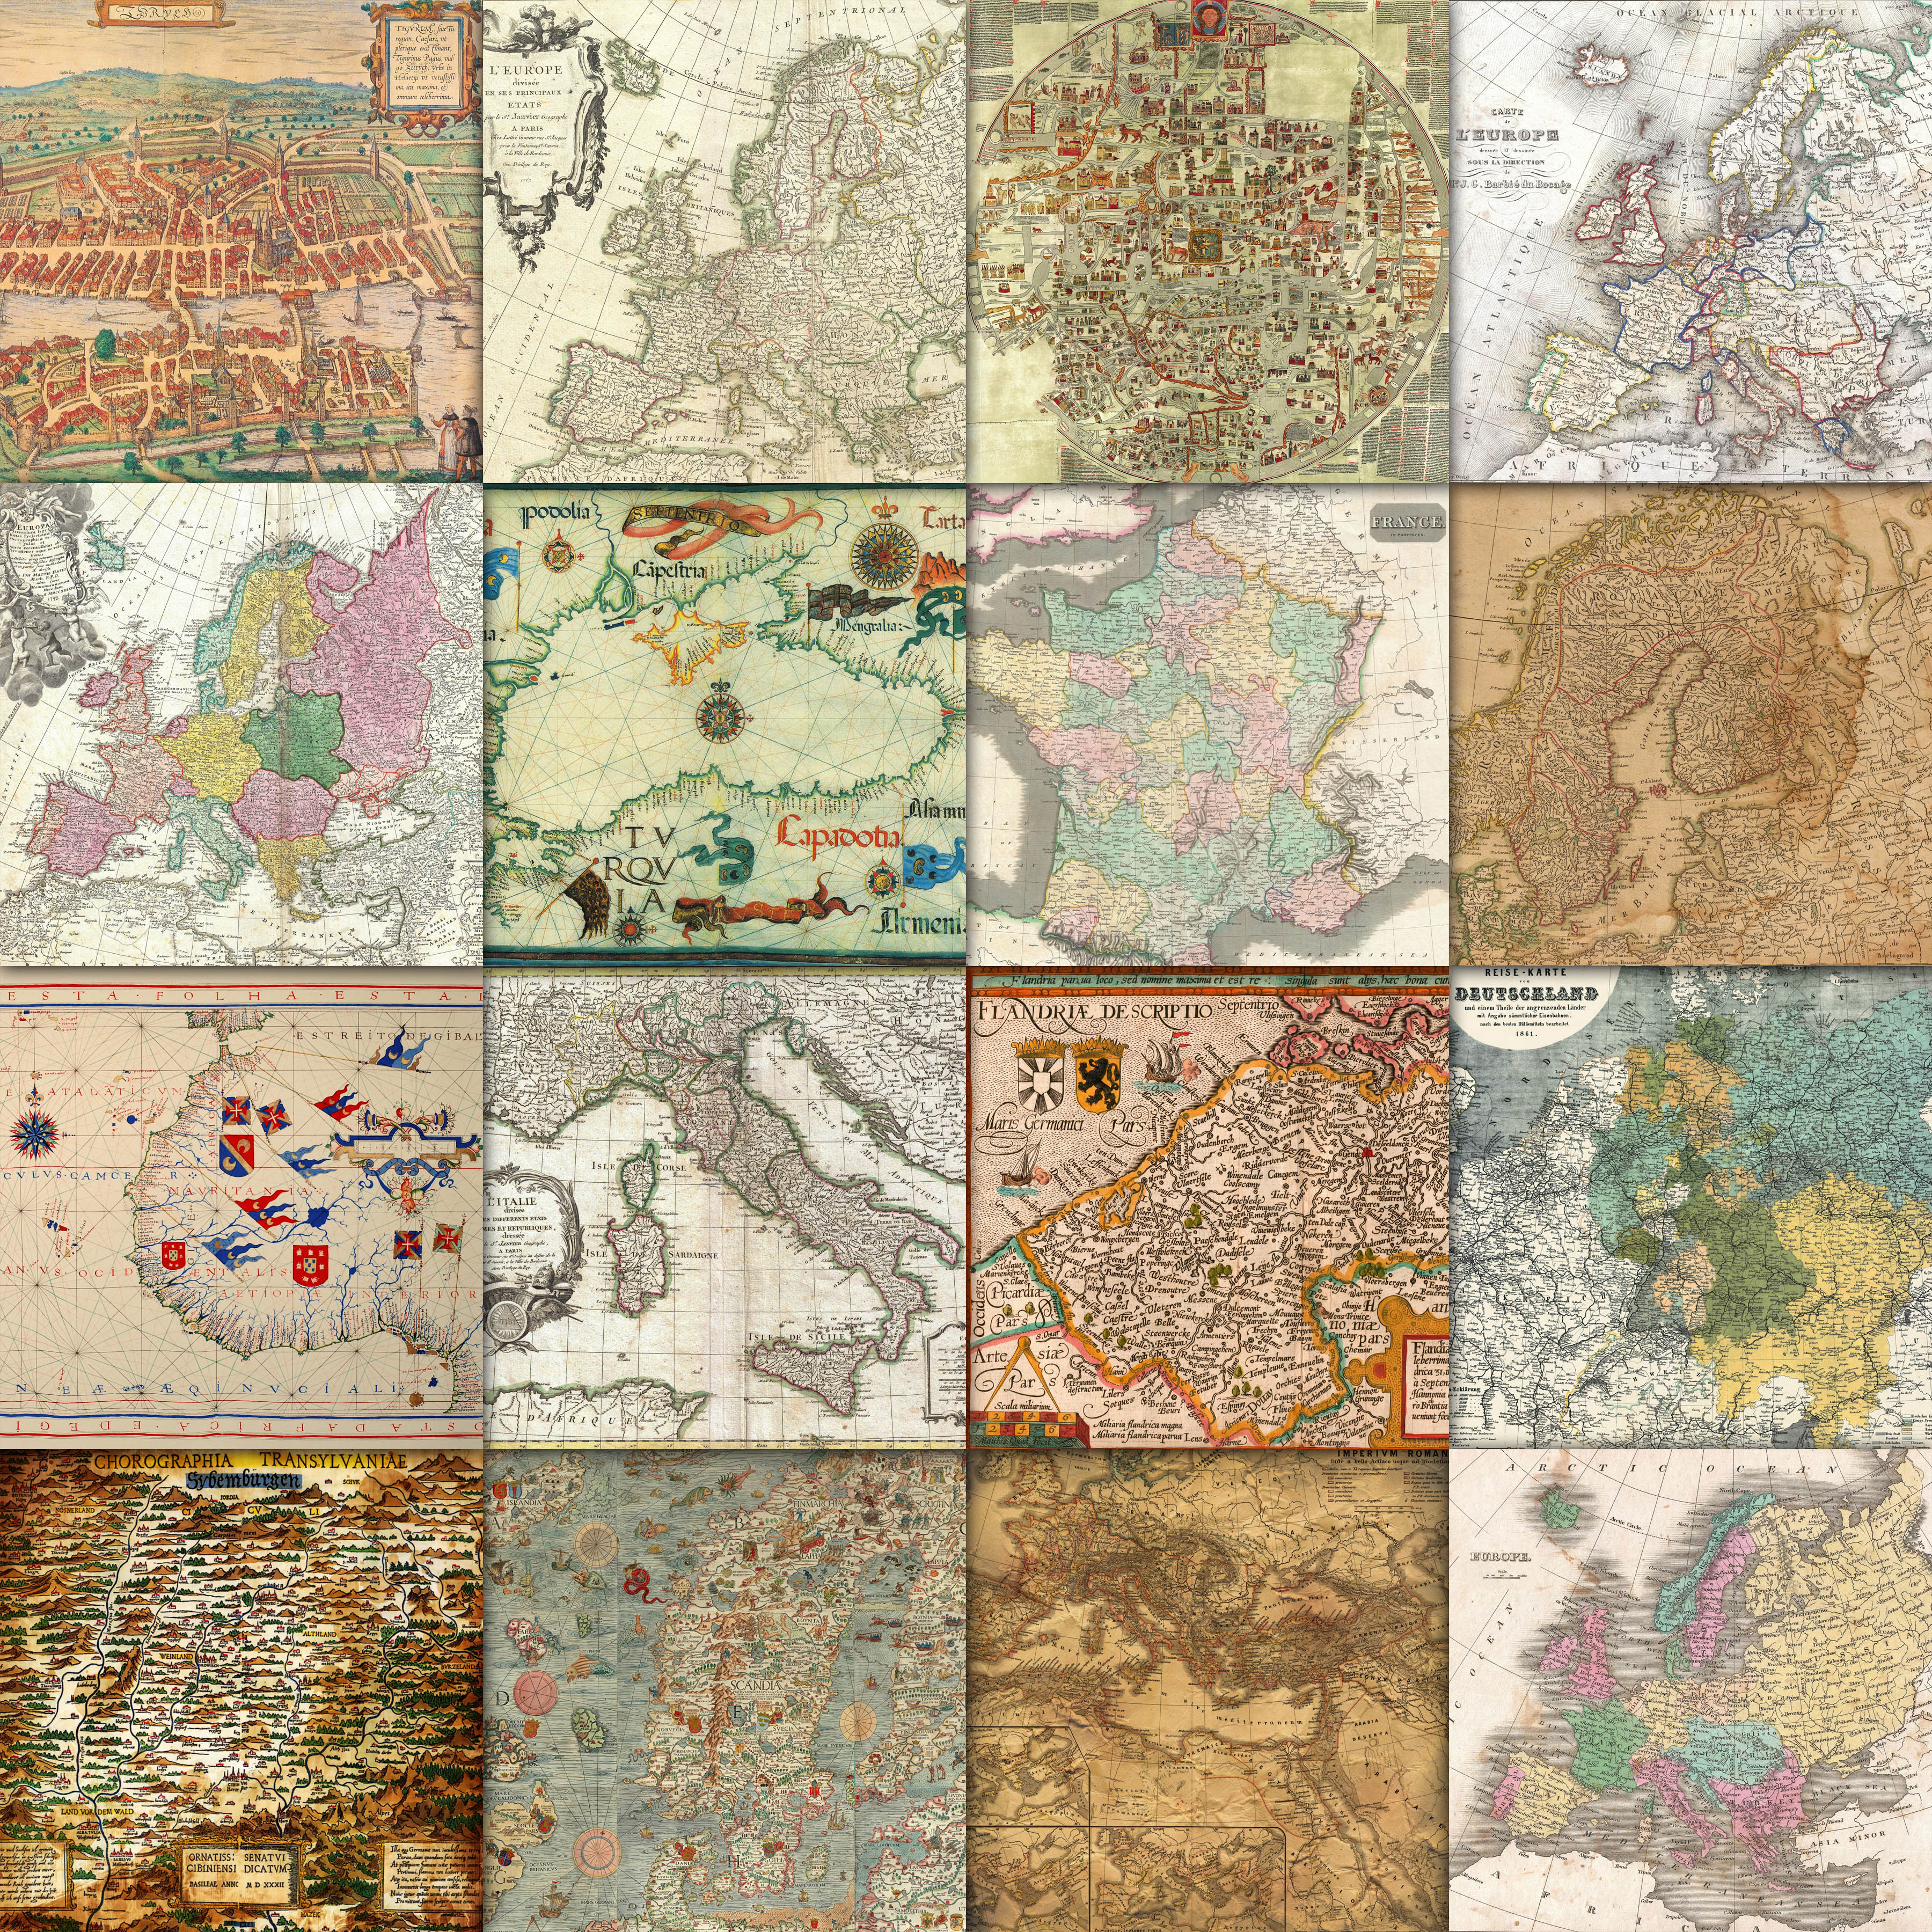 Vintage Maps of Europe Digital Paper Graphic Backgrounds By oldmarketdesigns - Image 2